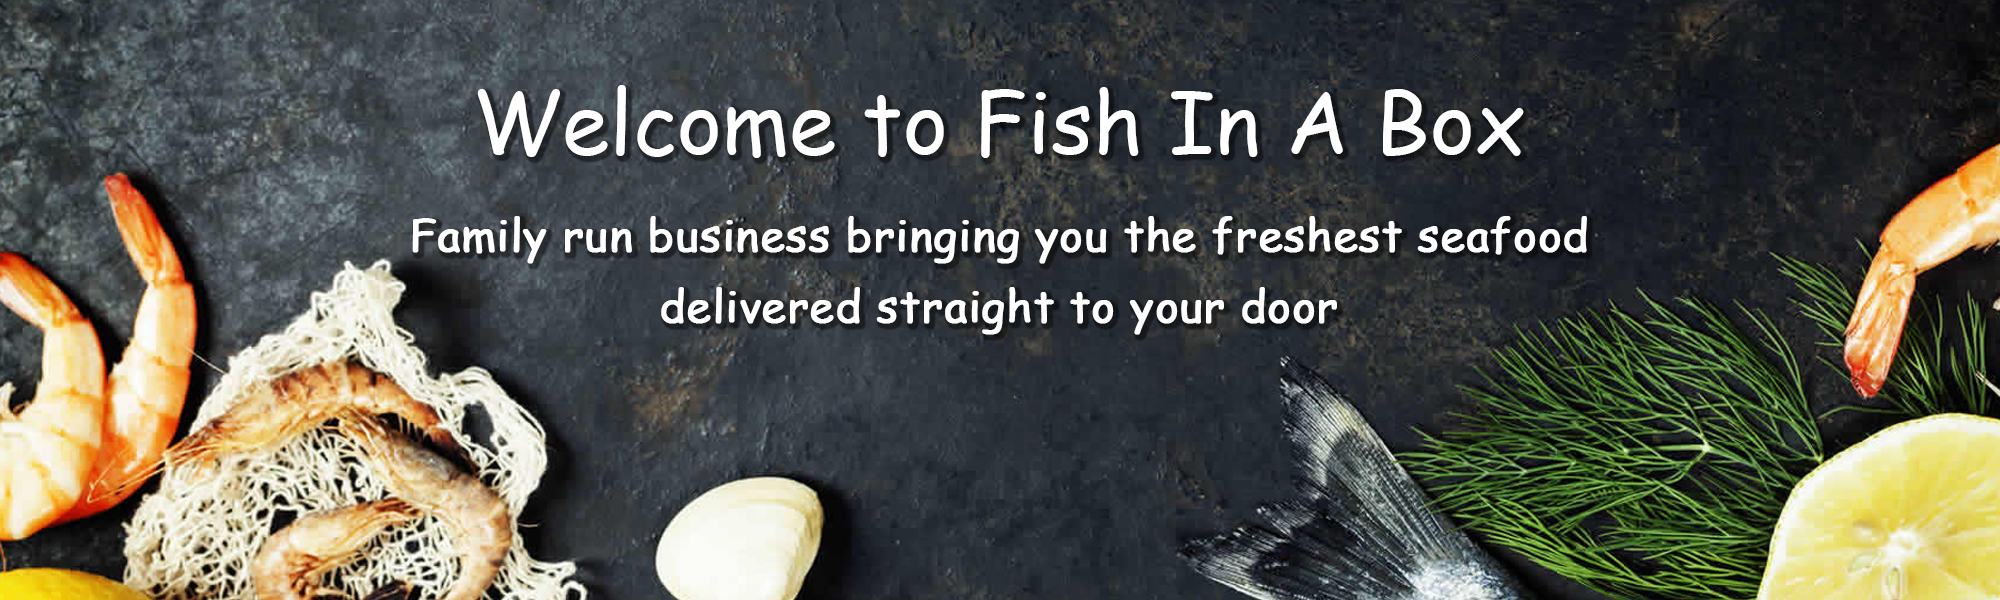 Welcome to Fish In A Box